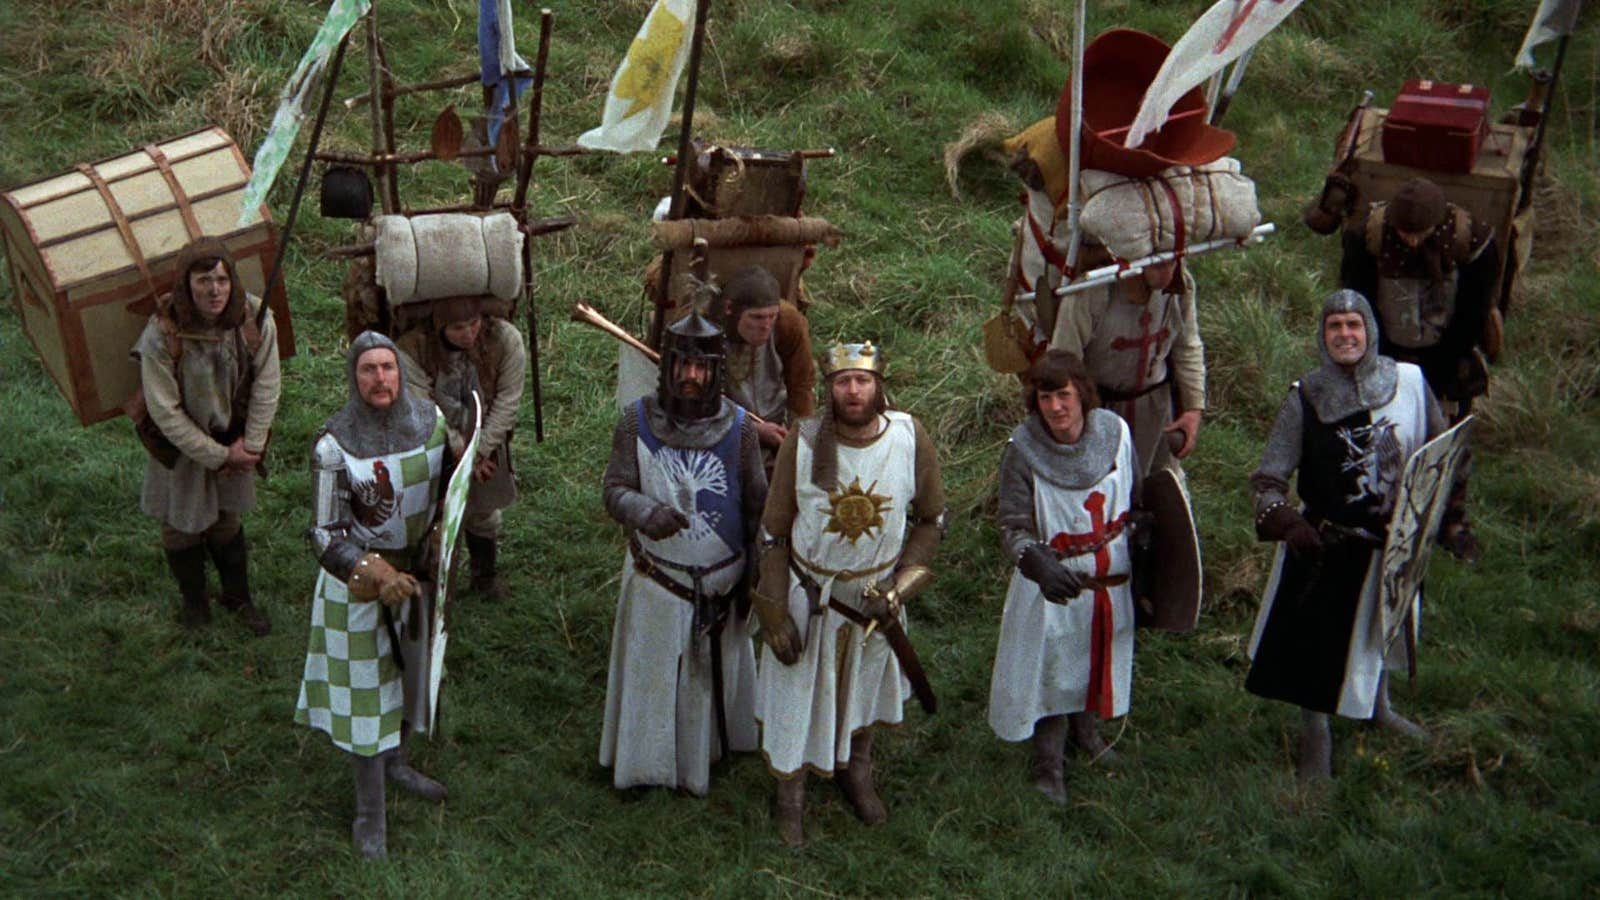 Best Comedies of all times - Funny English Movies - Monty Python and the Holy Grail